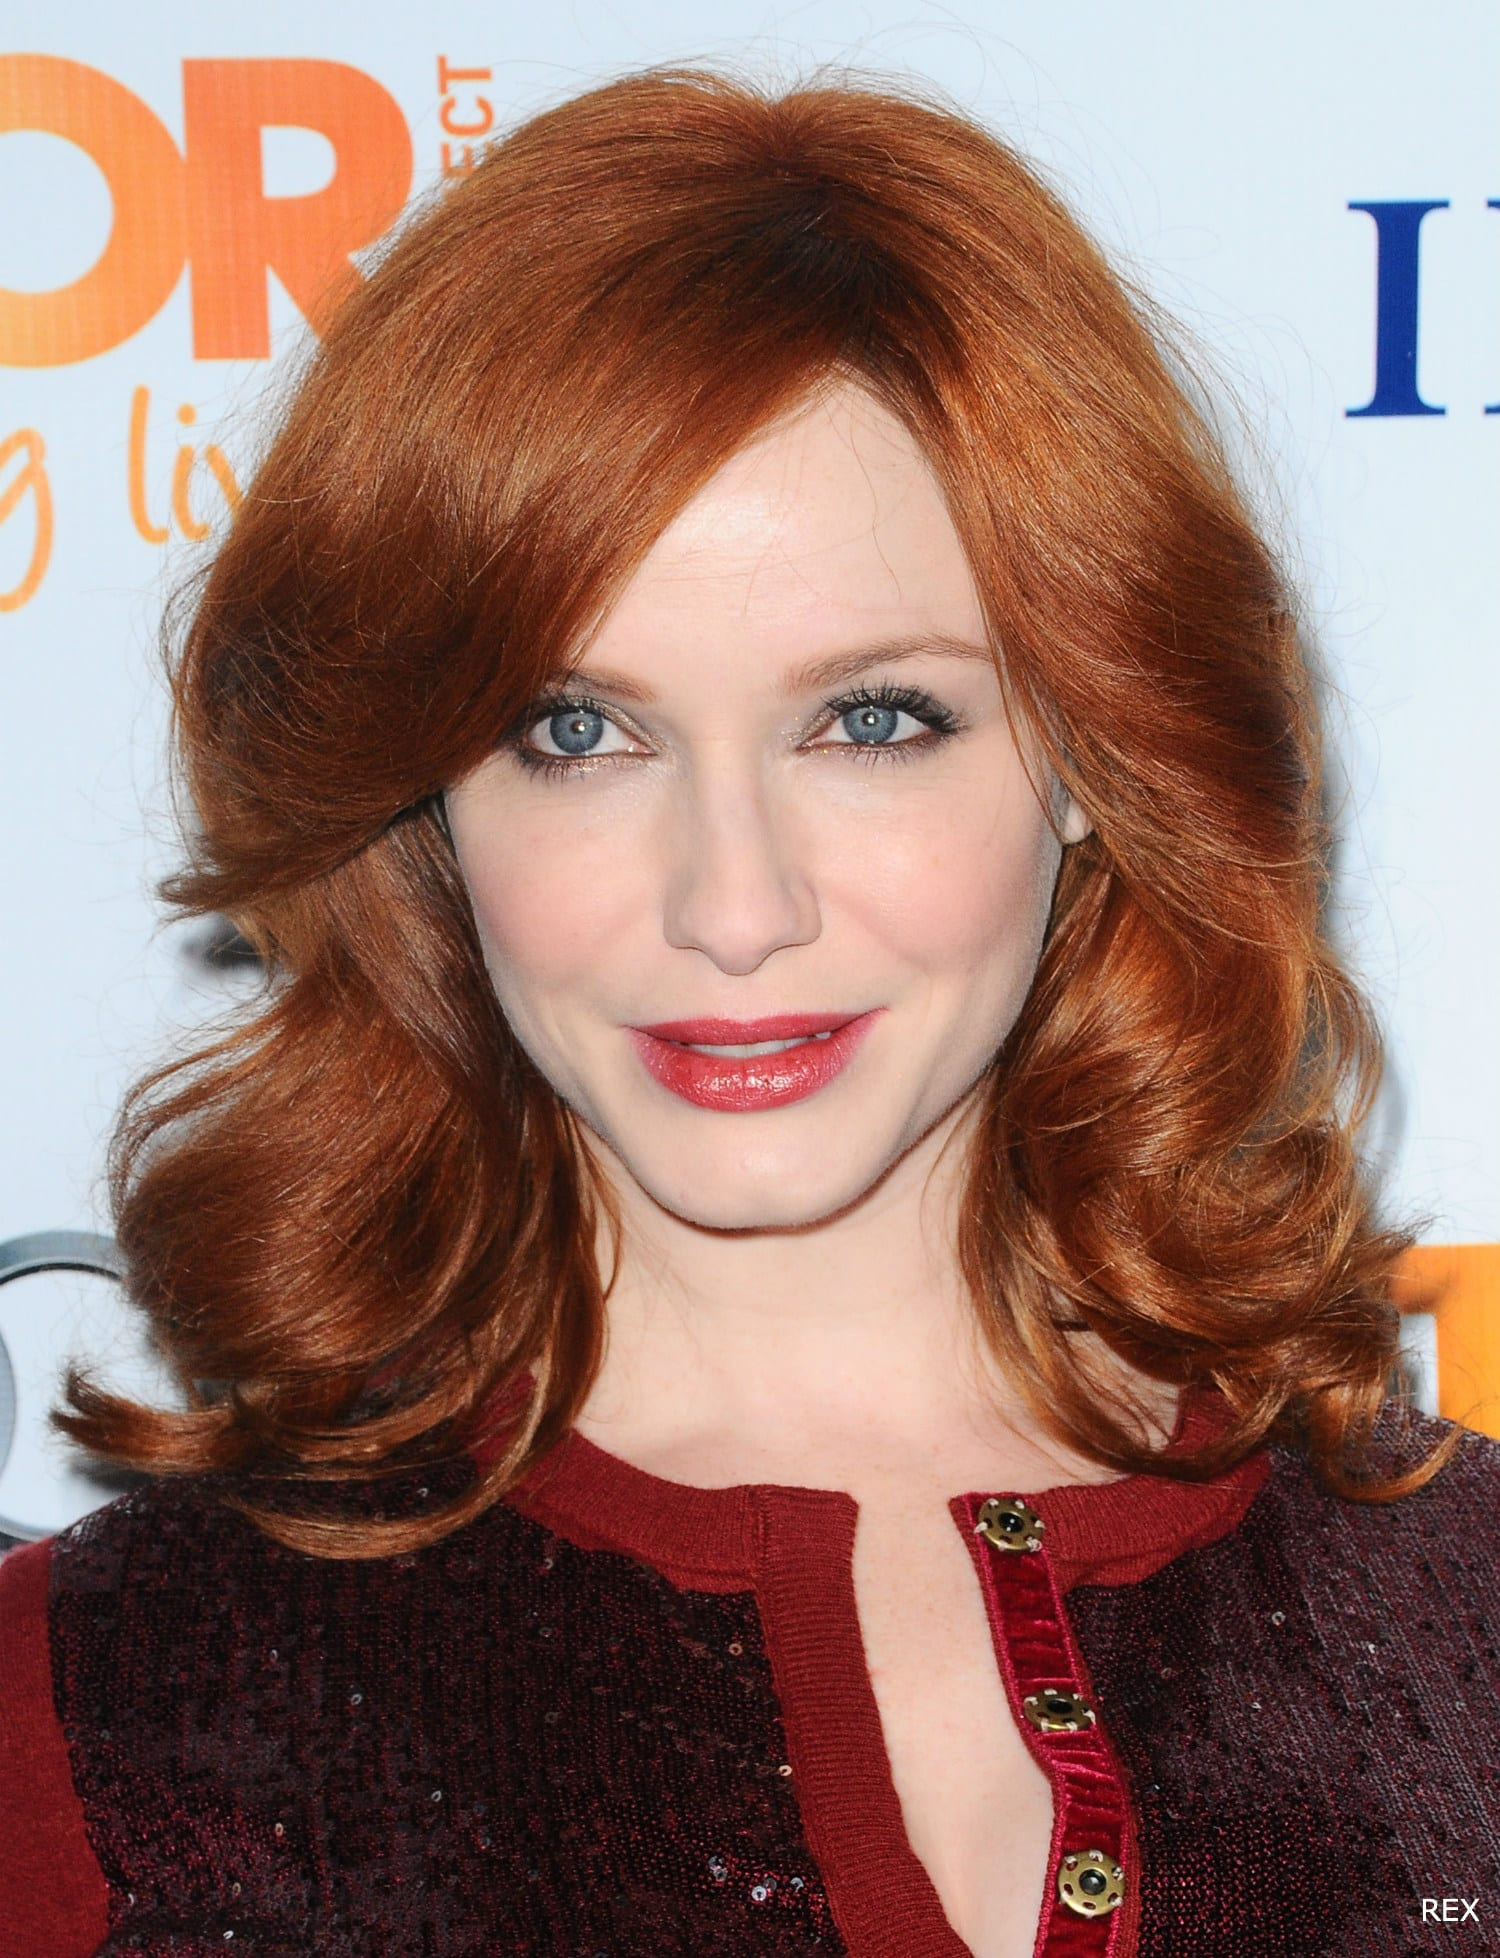 Ravishing reds our top redhead celebrities for Curly hair salon uk